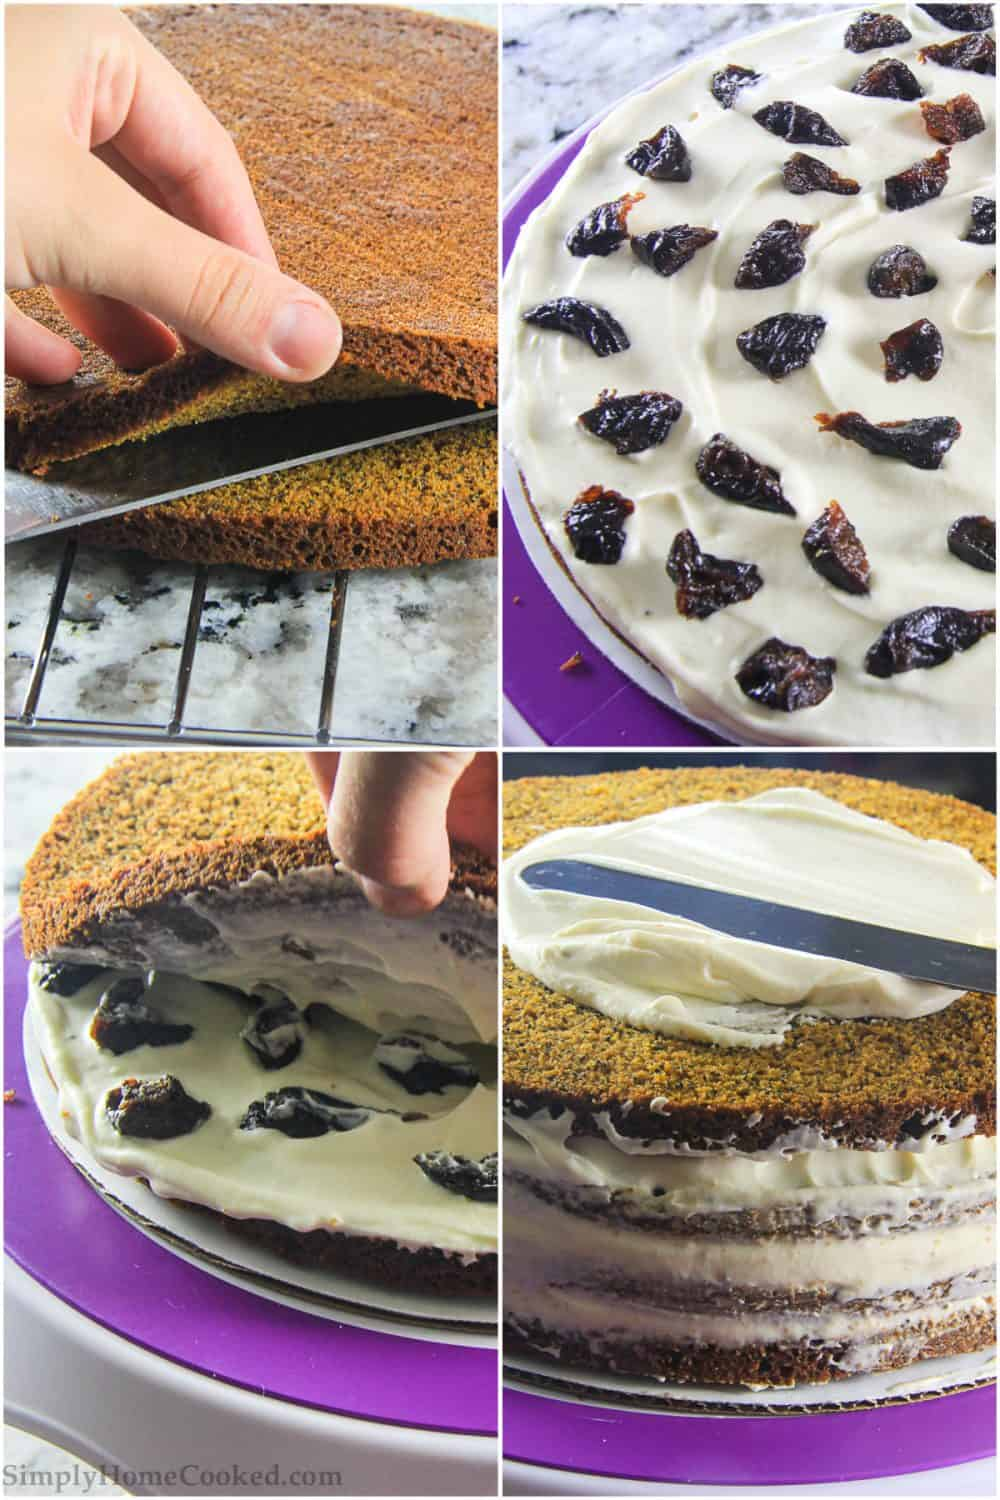 Four tiled images of a Poppy Seed Honey Cake being assembled by cutting the cake and spreading cream frosting and plums between the layers before frosting the outside.